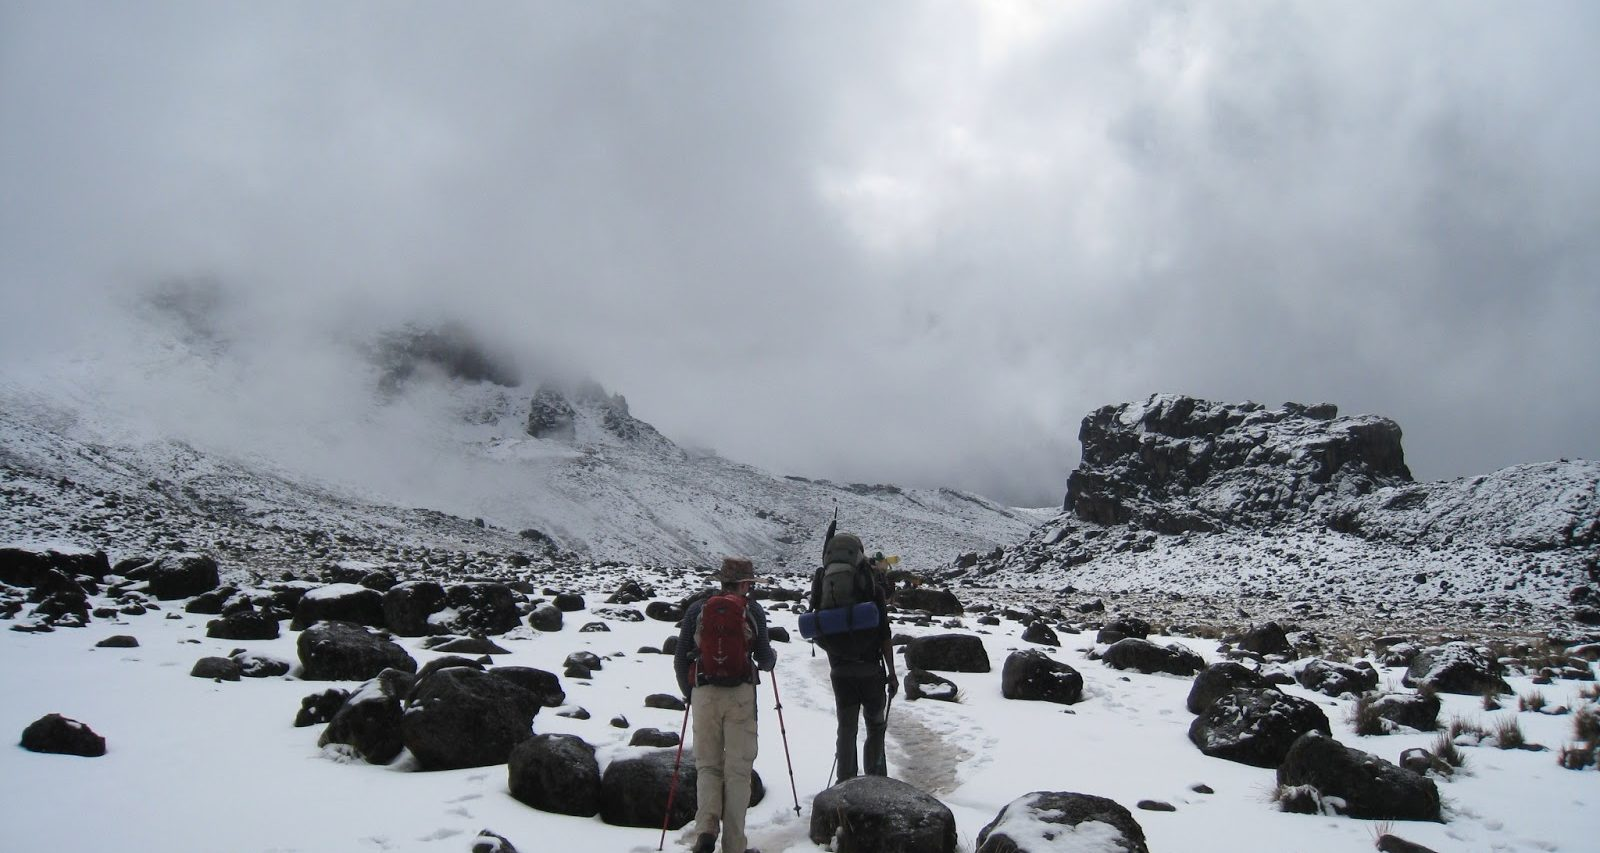 The Burden of Medicine on Mt. Kilimanjaro